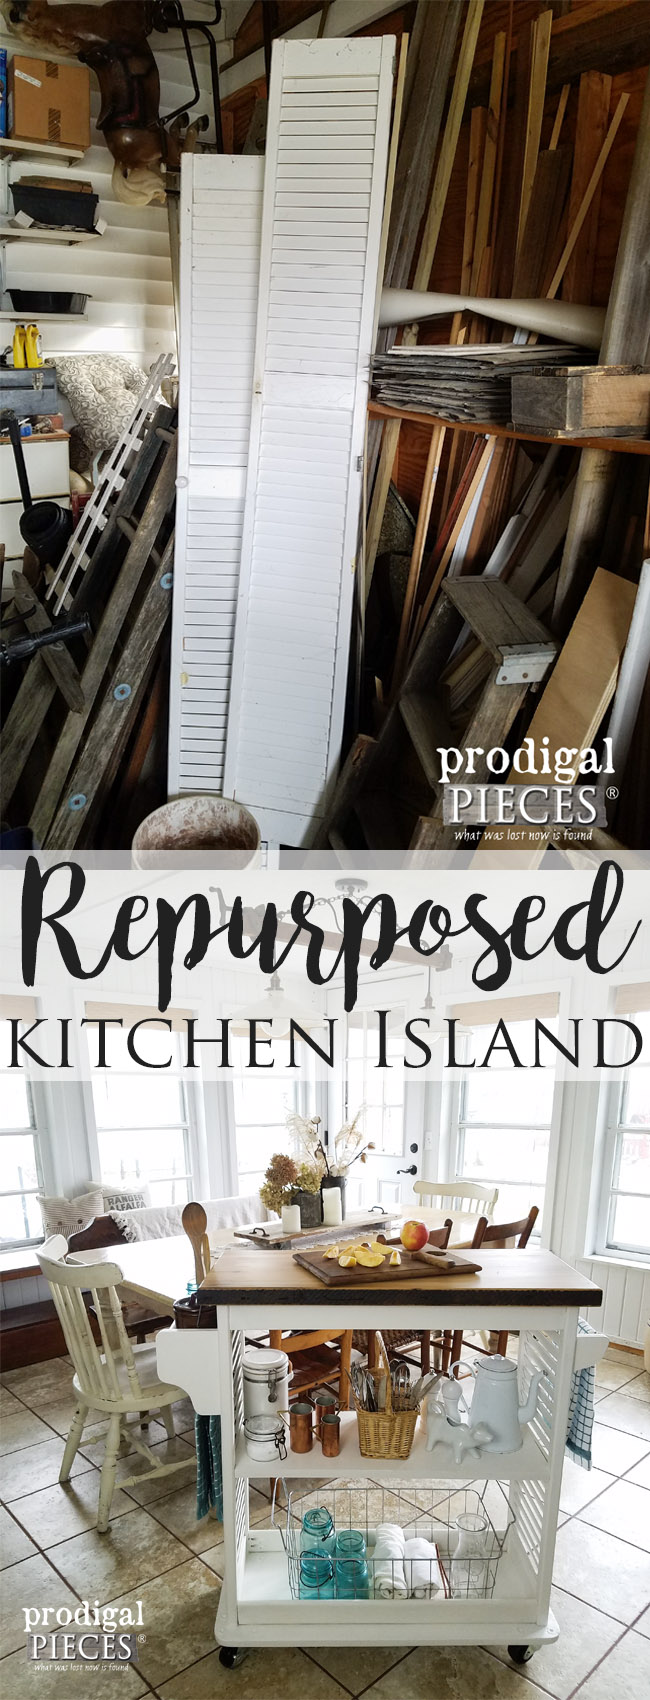 Check out this Repurposed Kitchen Island Cart all made from Repurposed Materials by Prodigal Pieces | prodigalpieces.com